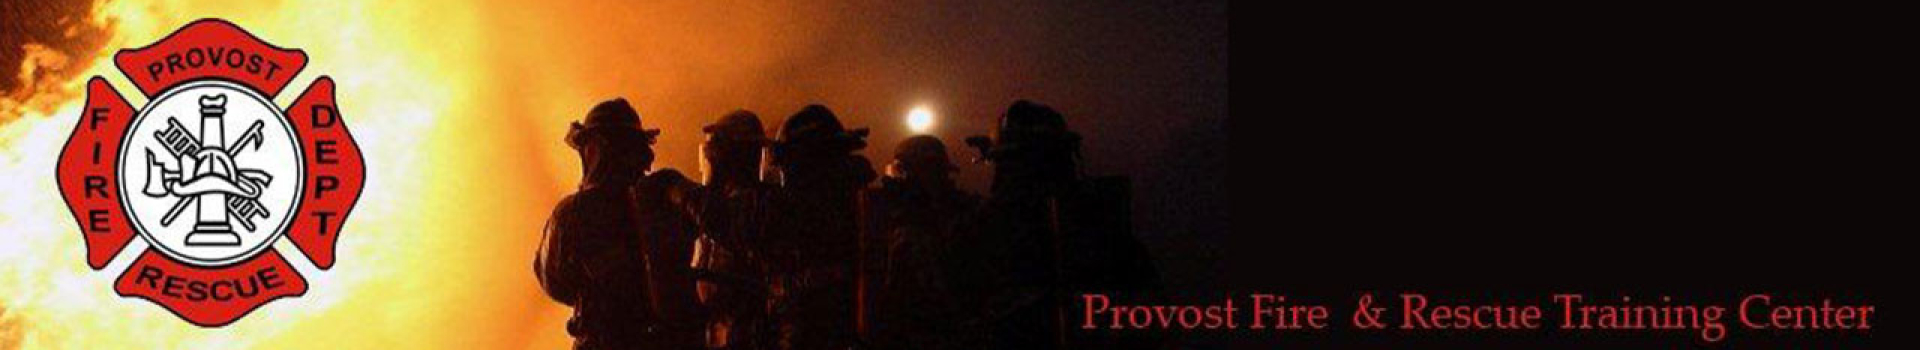 Provost-Fire-Rescue-Training-Centre